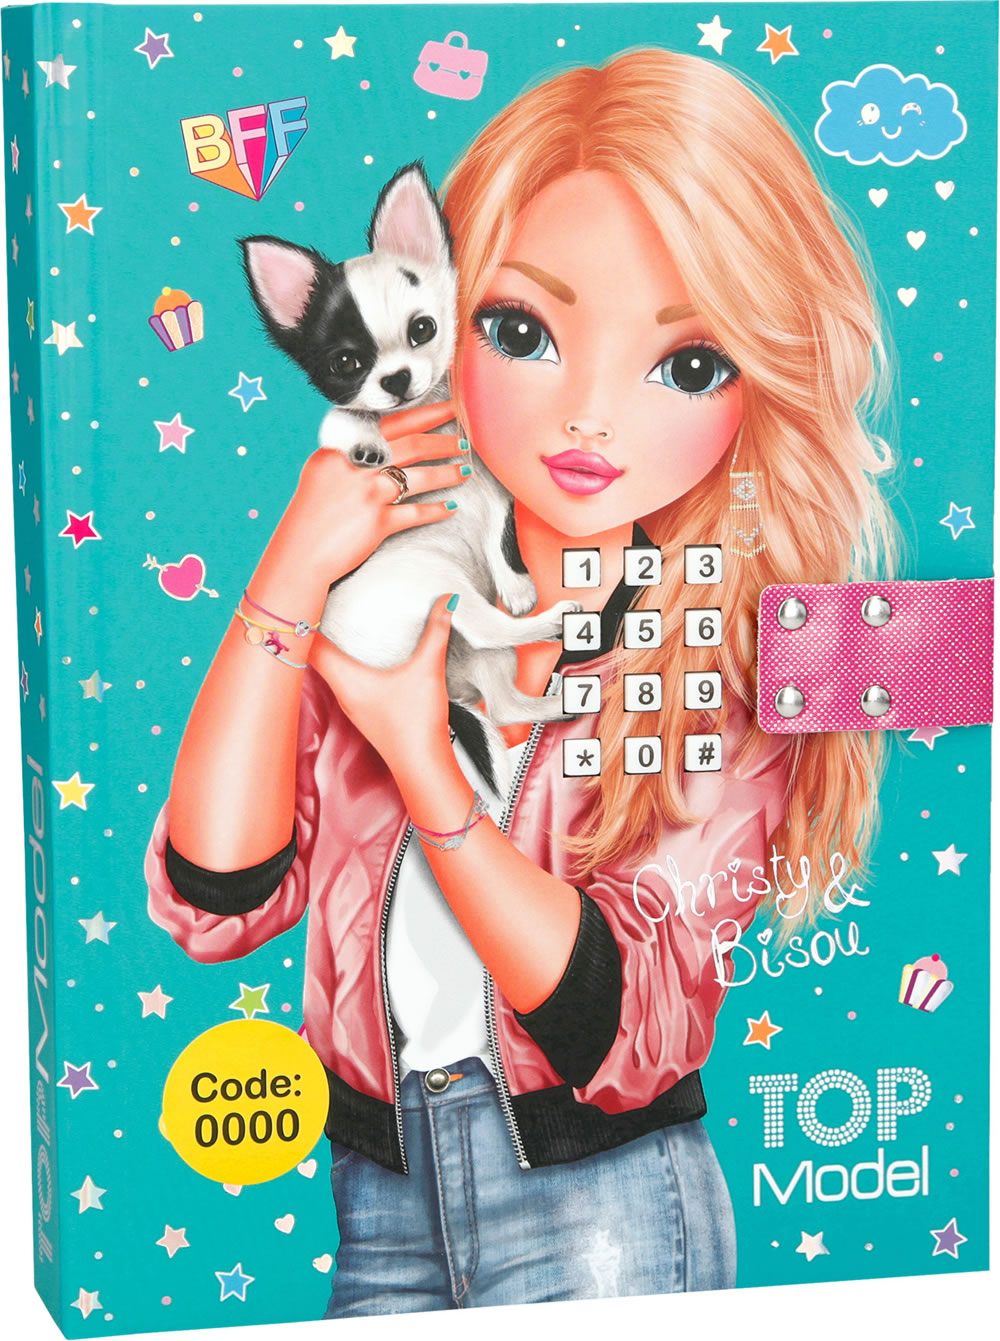 Topmodel diary with secret code christy bisou online at for Top mobel